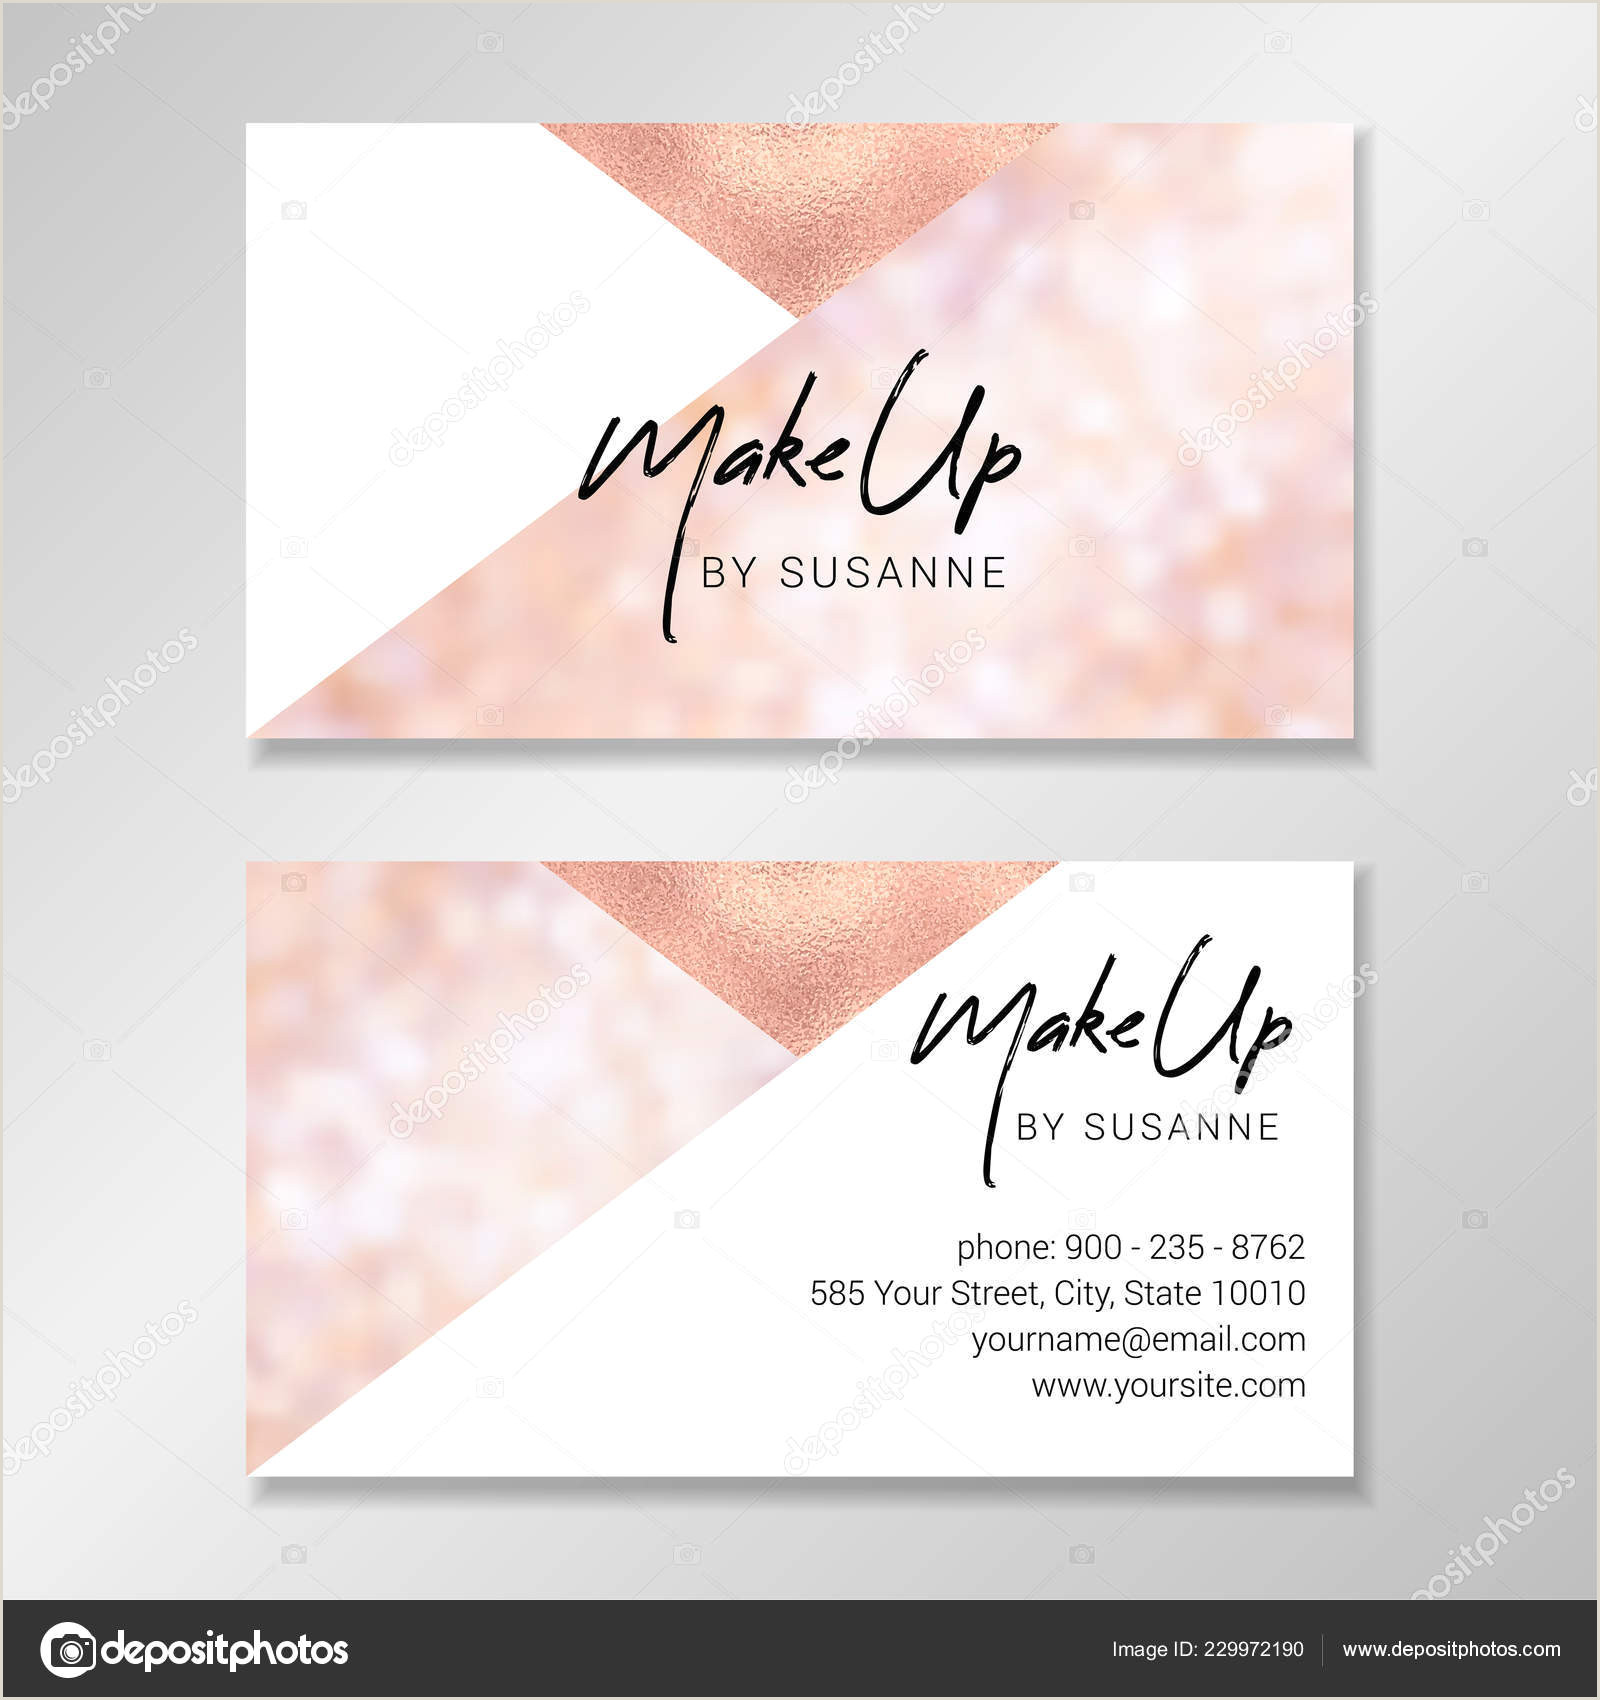 Design My Own Buisness Cards Vector Modern Customizable Business Card Easy Customize Your